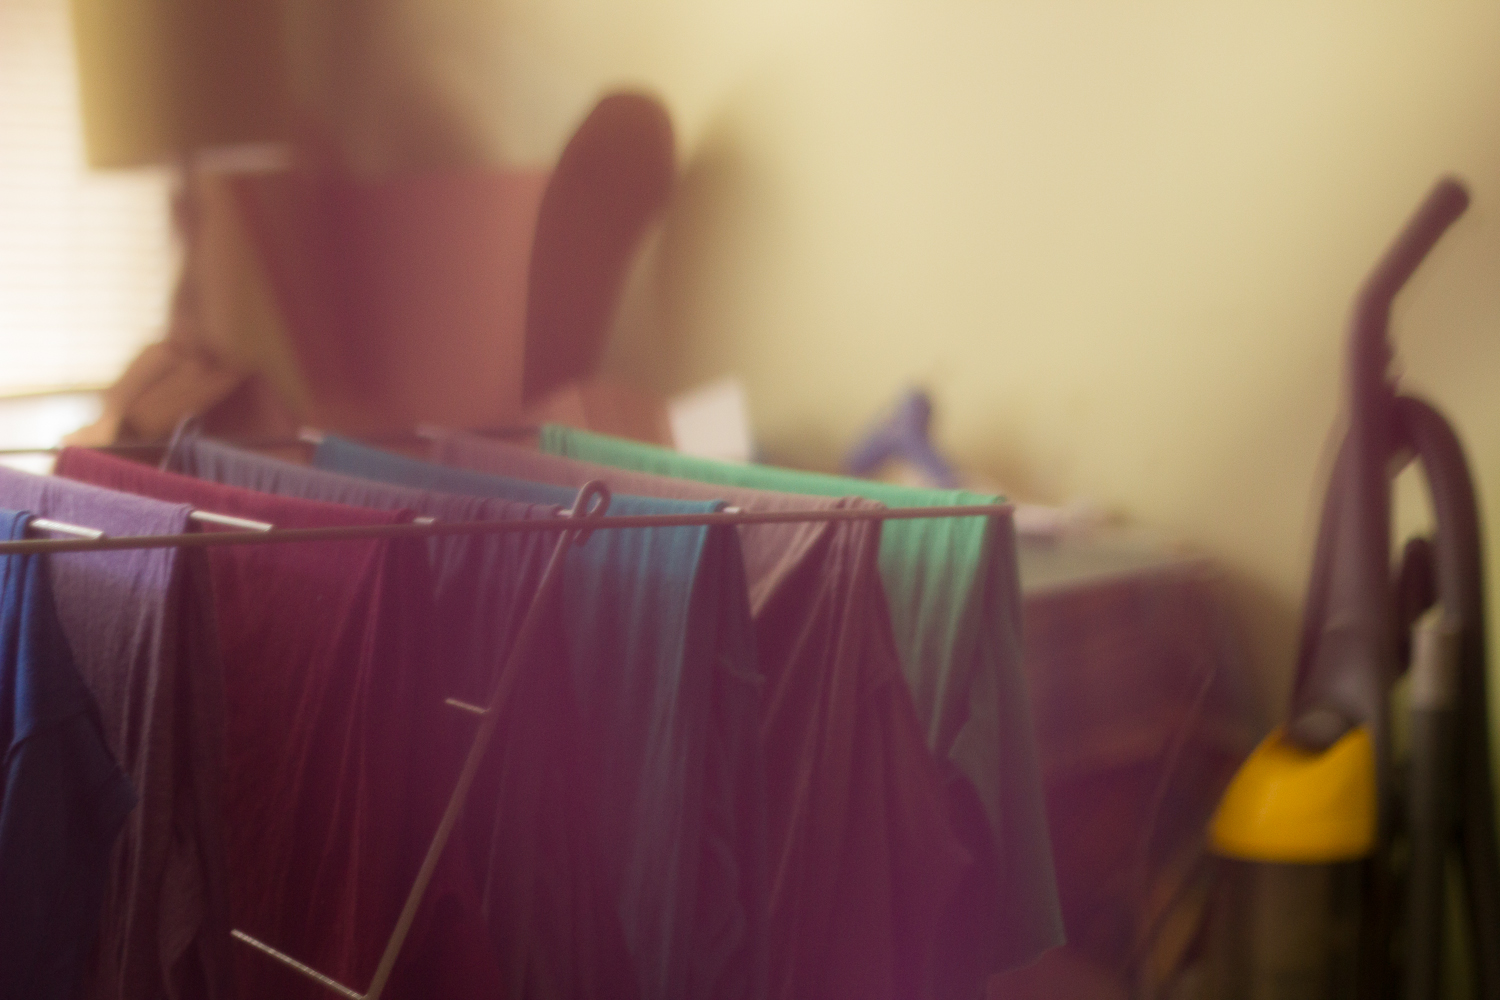 The same shot as the previous picture (duh), but shooting through fabric this time.